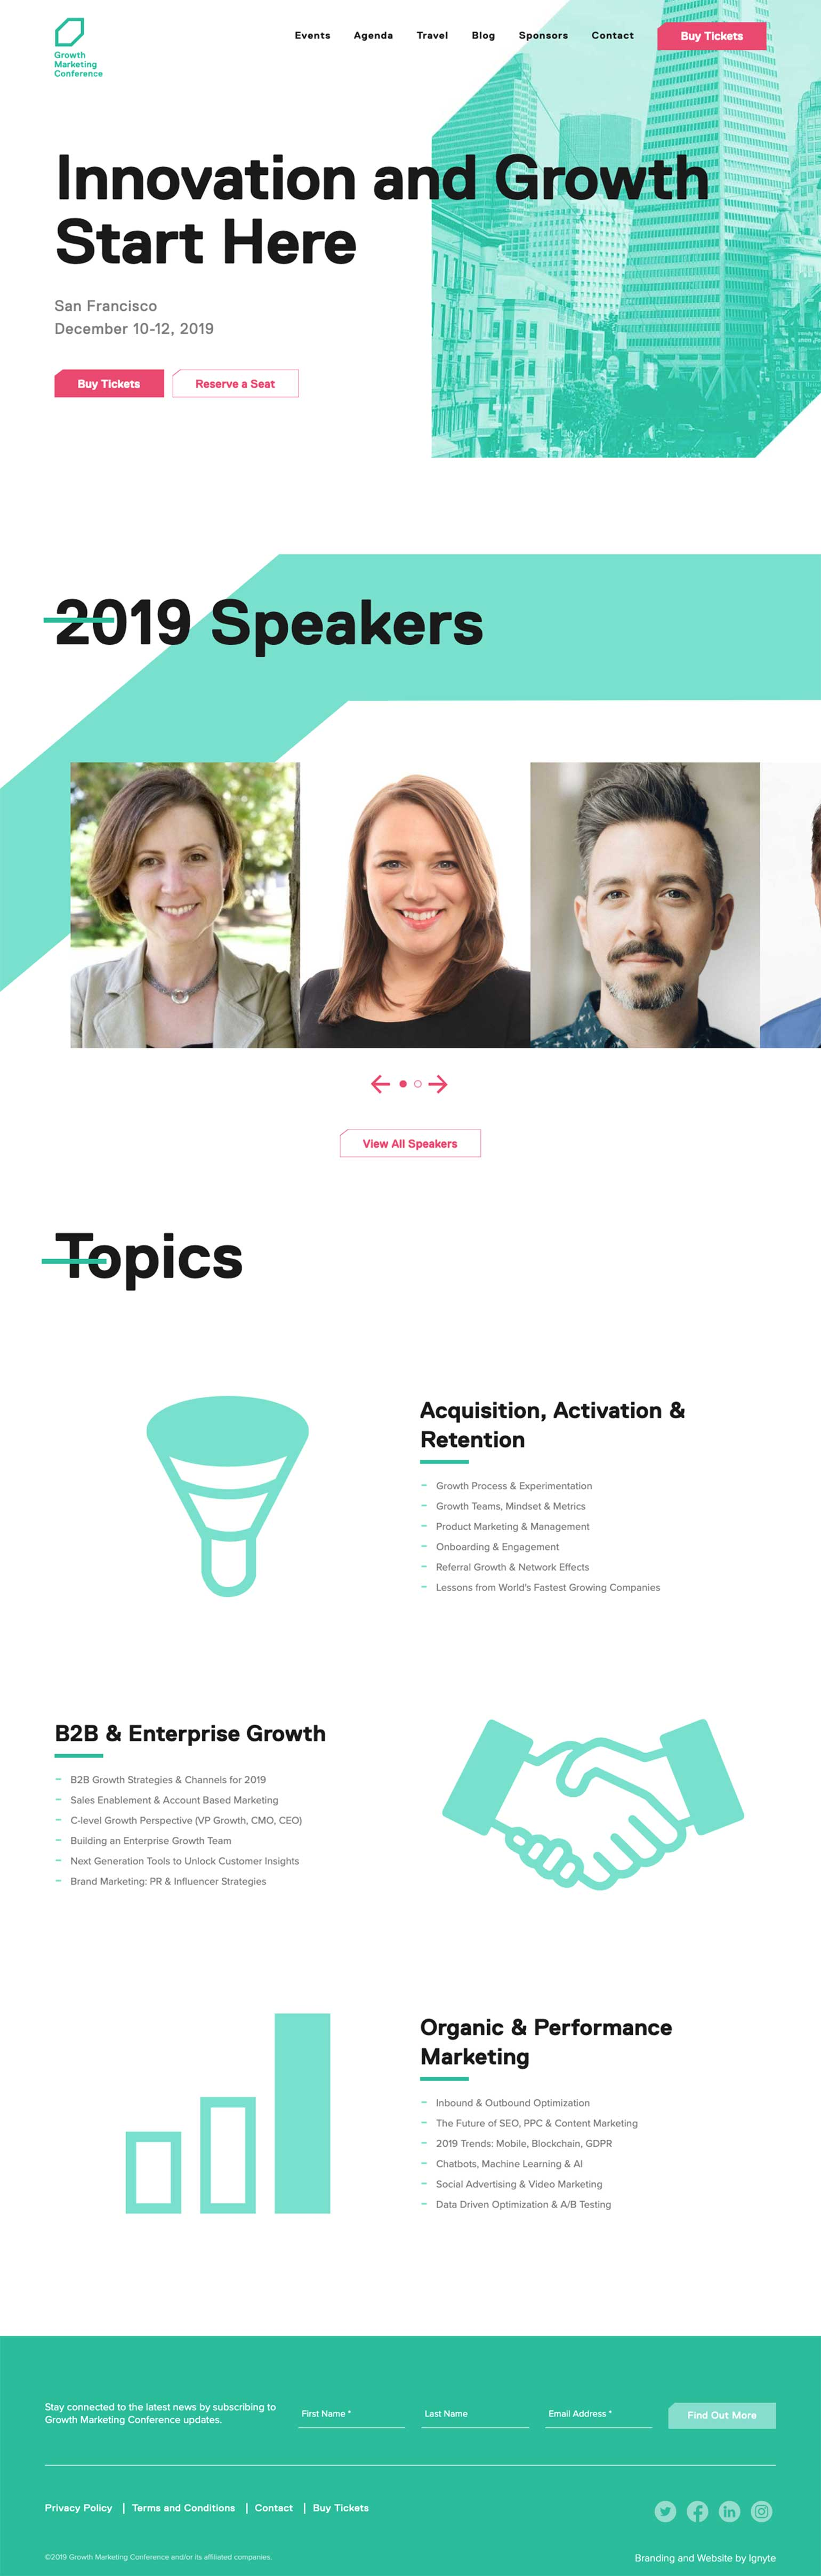 Ignyte-branding-agency-web-design-growth-marketing-conference-home-page-V3